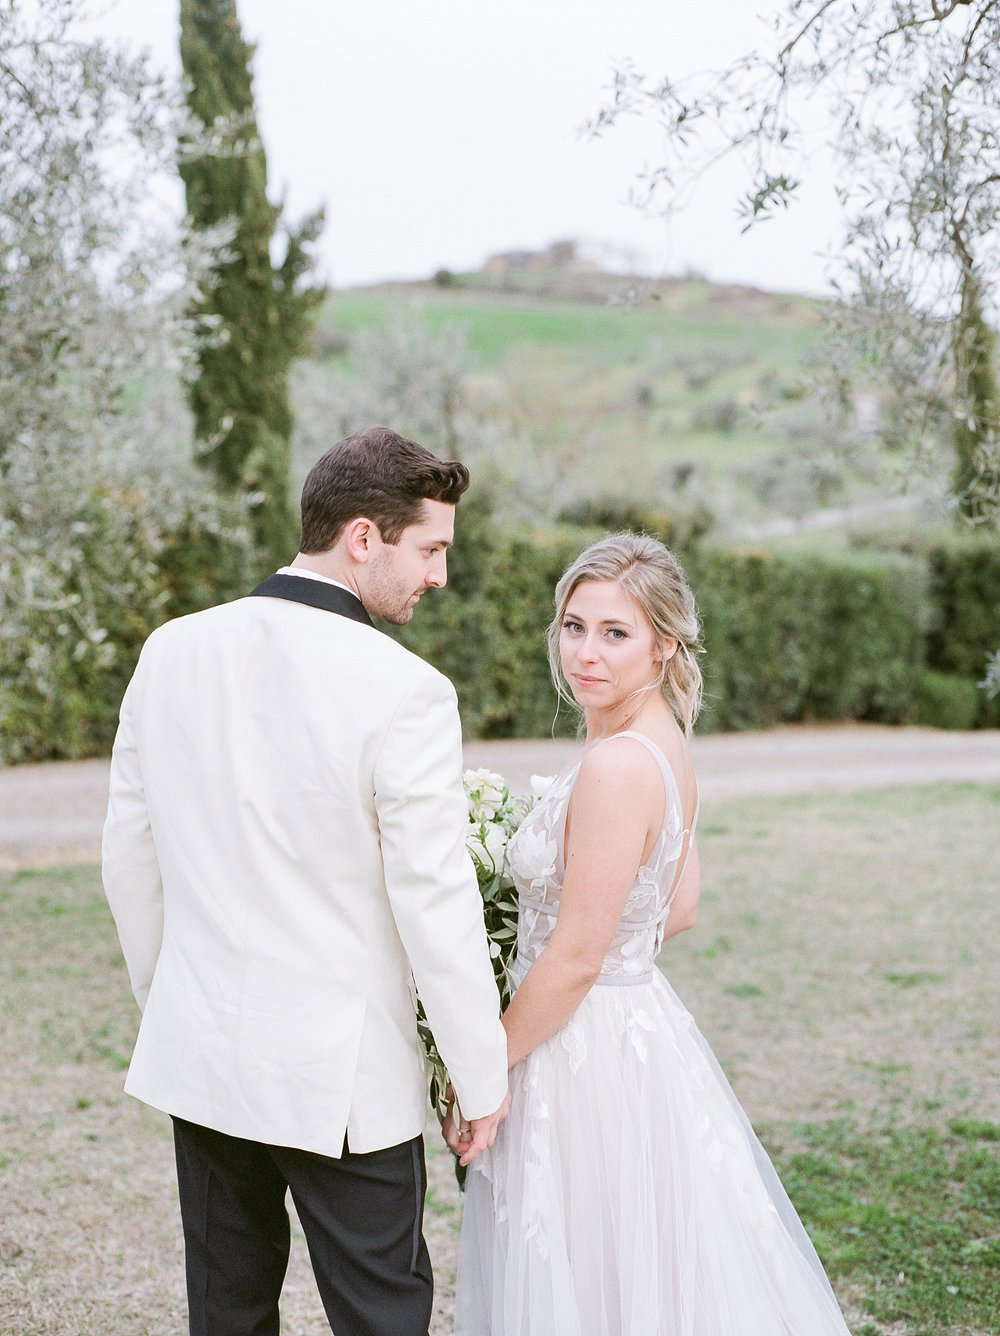 All White Destination Wedding in the Hills of Tuscany Italy at Estate Borgo Petrognano by Kelsi Kliethermes Photography_0059.jpg